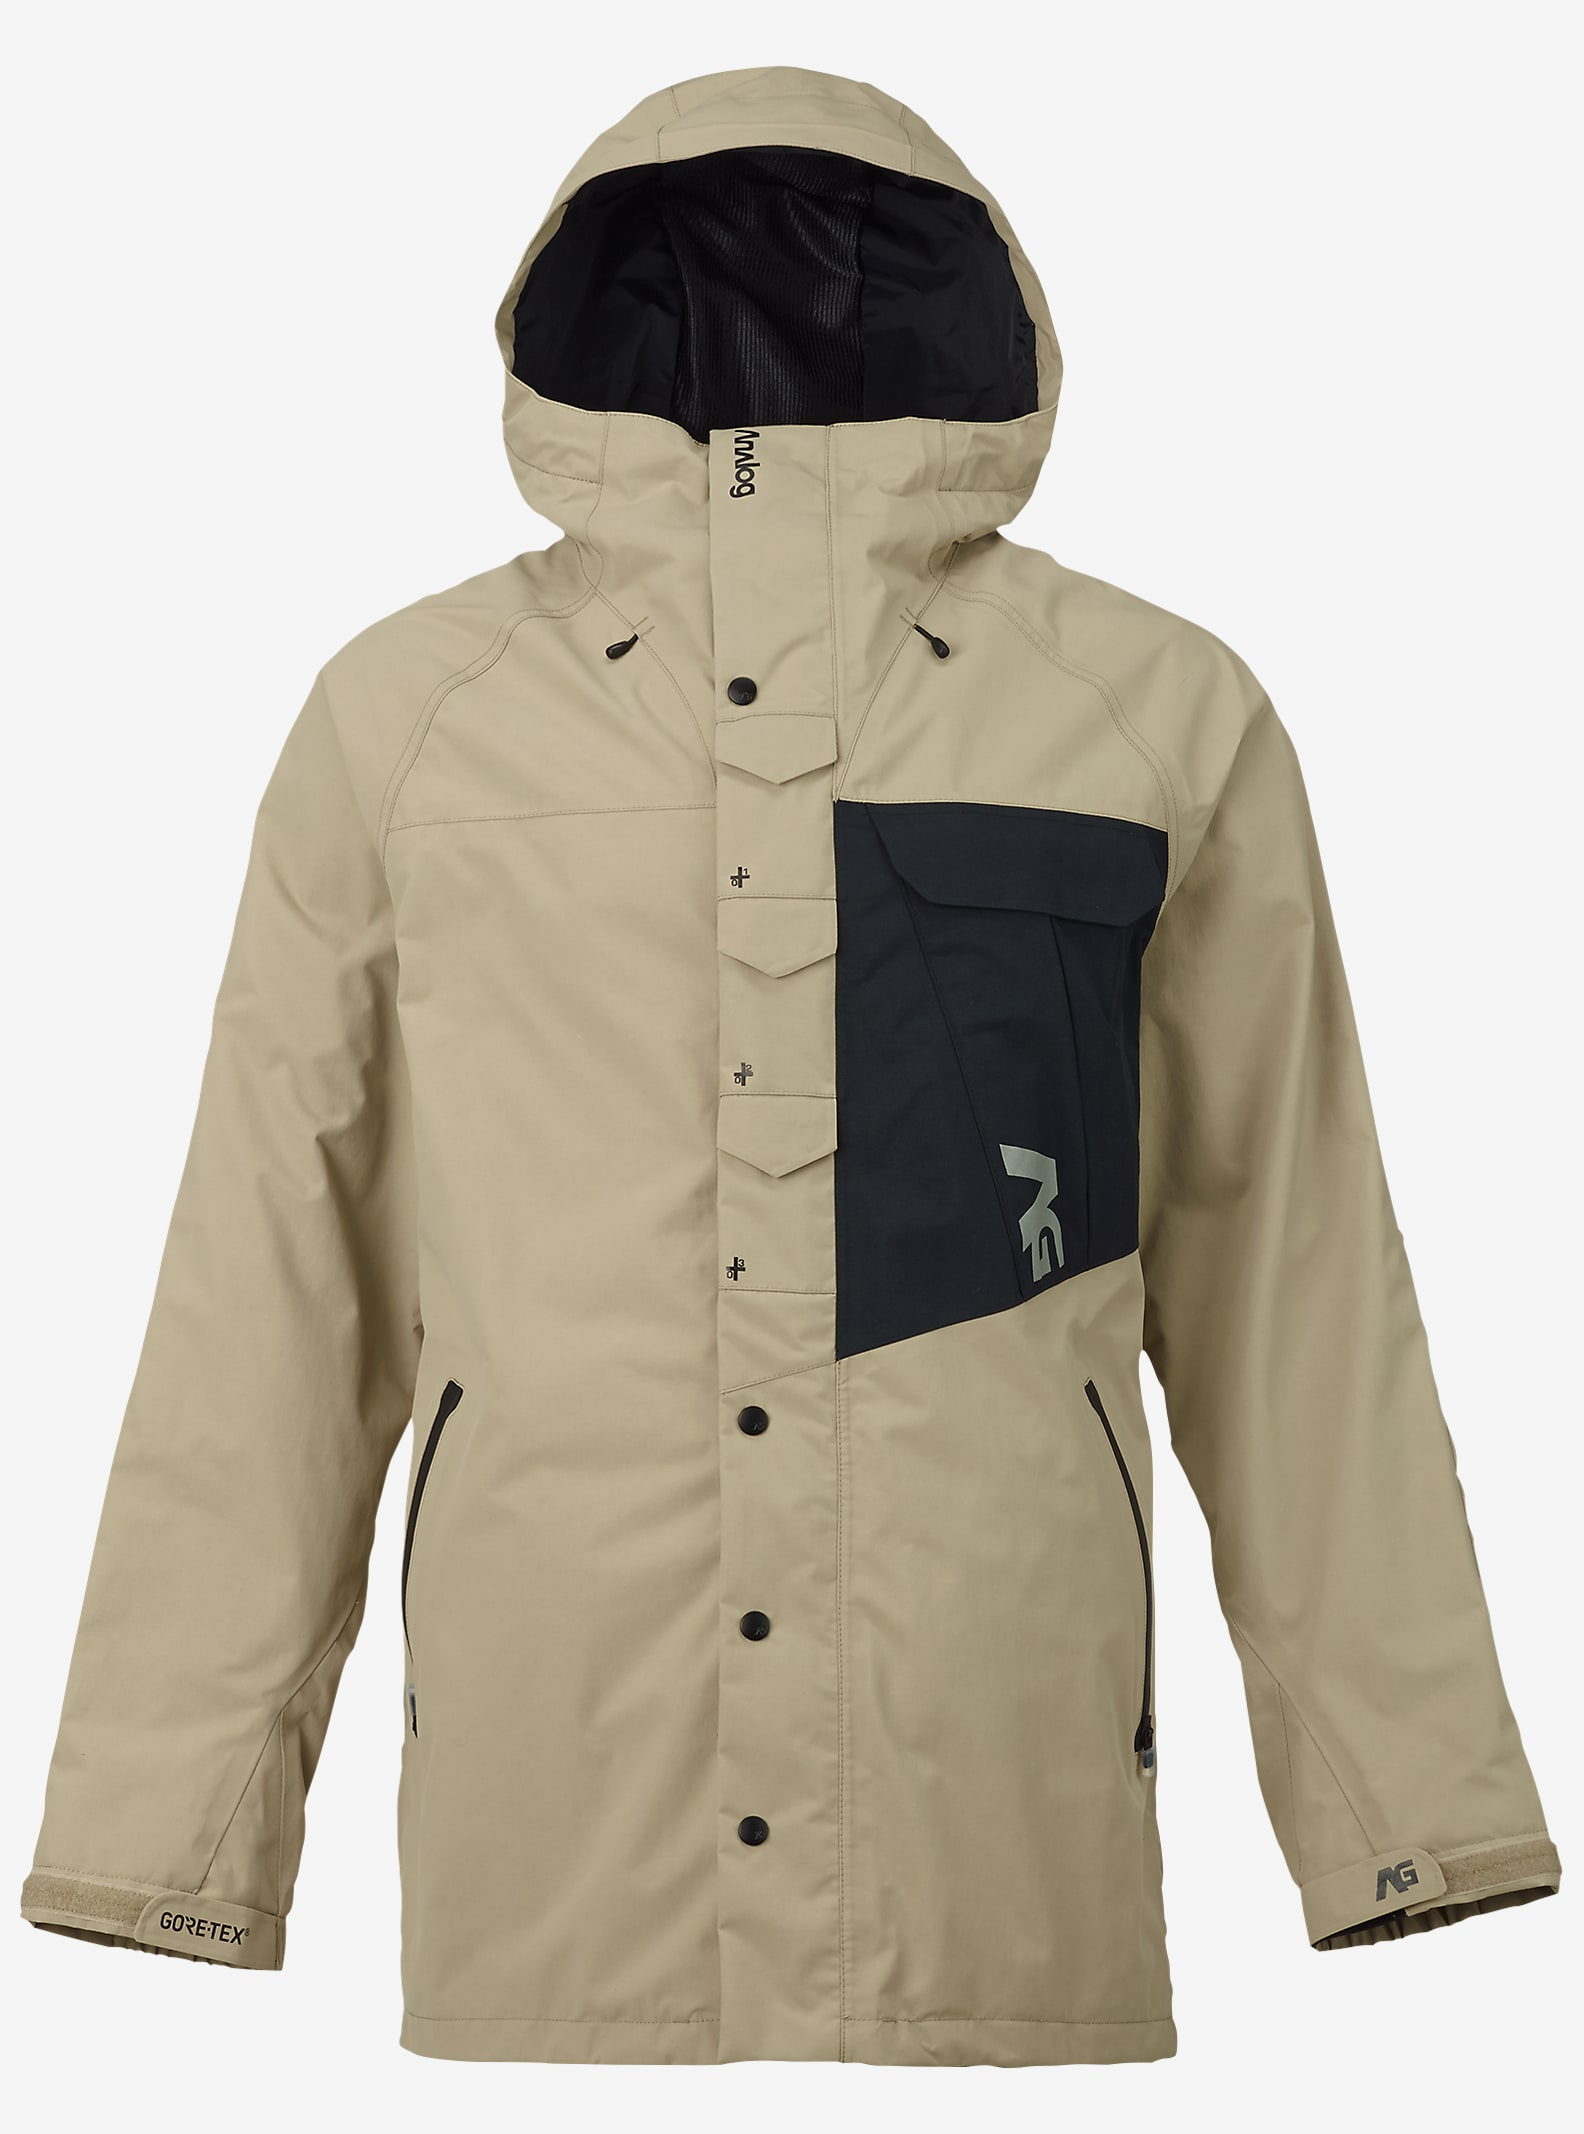 Analog Zenith GORE-TEX® Snowboard Jacket shown in Putty / True Black